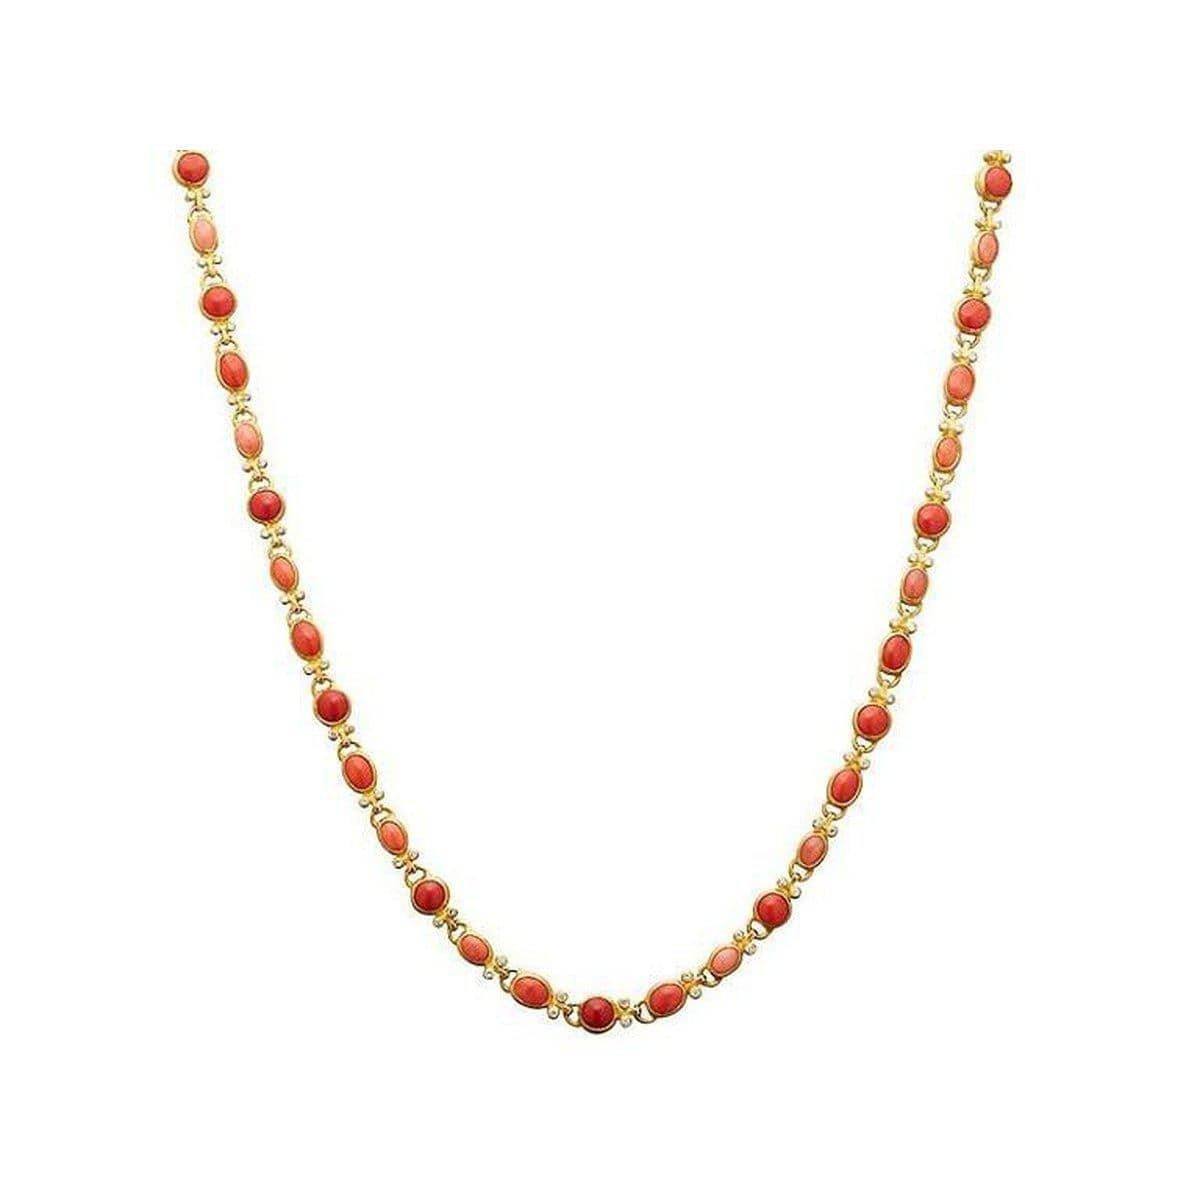 Amulet Hue 24K Gold Coral & Diamond Necklace - N-U25677-CO-GURHAN-Renee Taylor Gallery